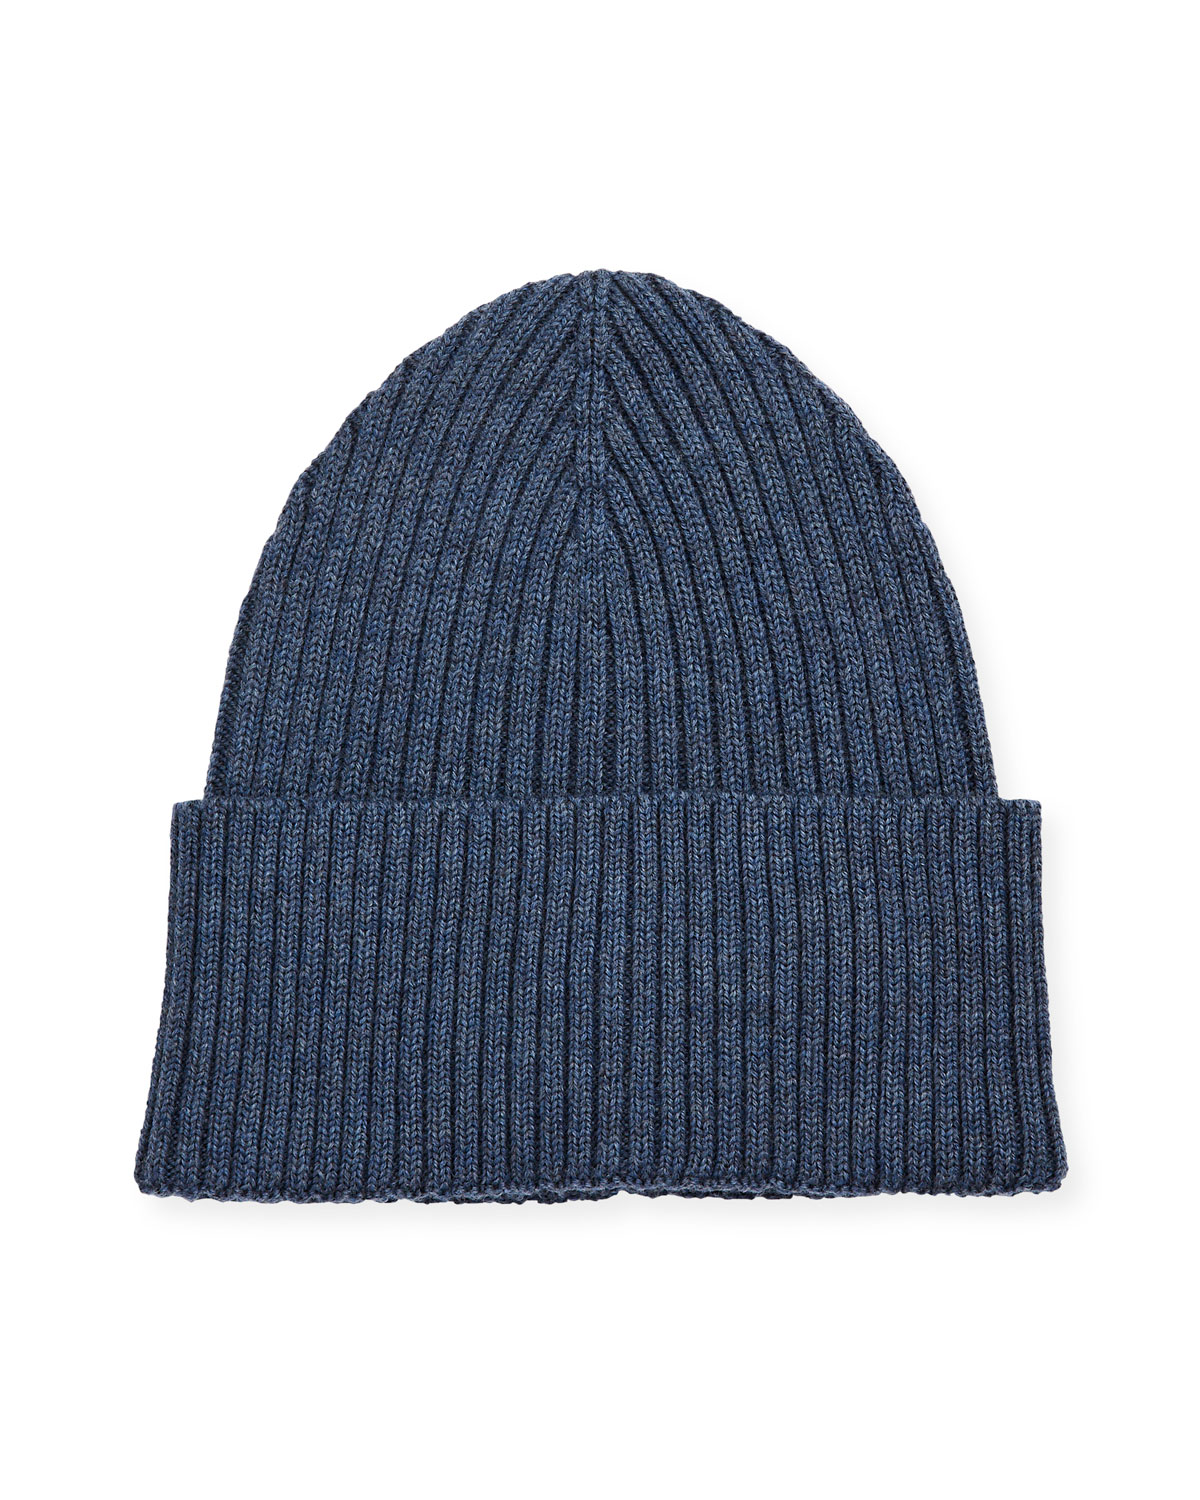 Eton Hats MEN'S RIBBED WOOL BEANIE HAT, BLUE